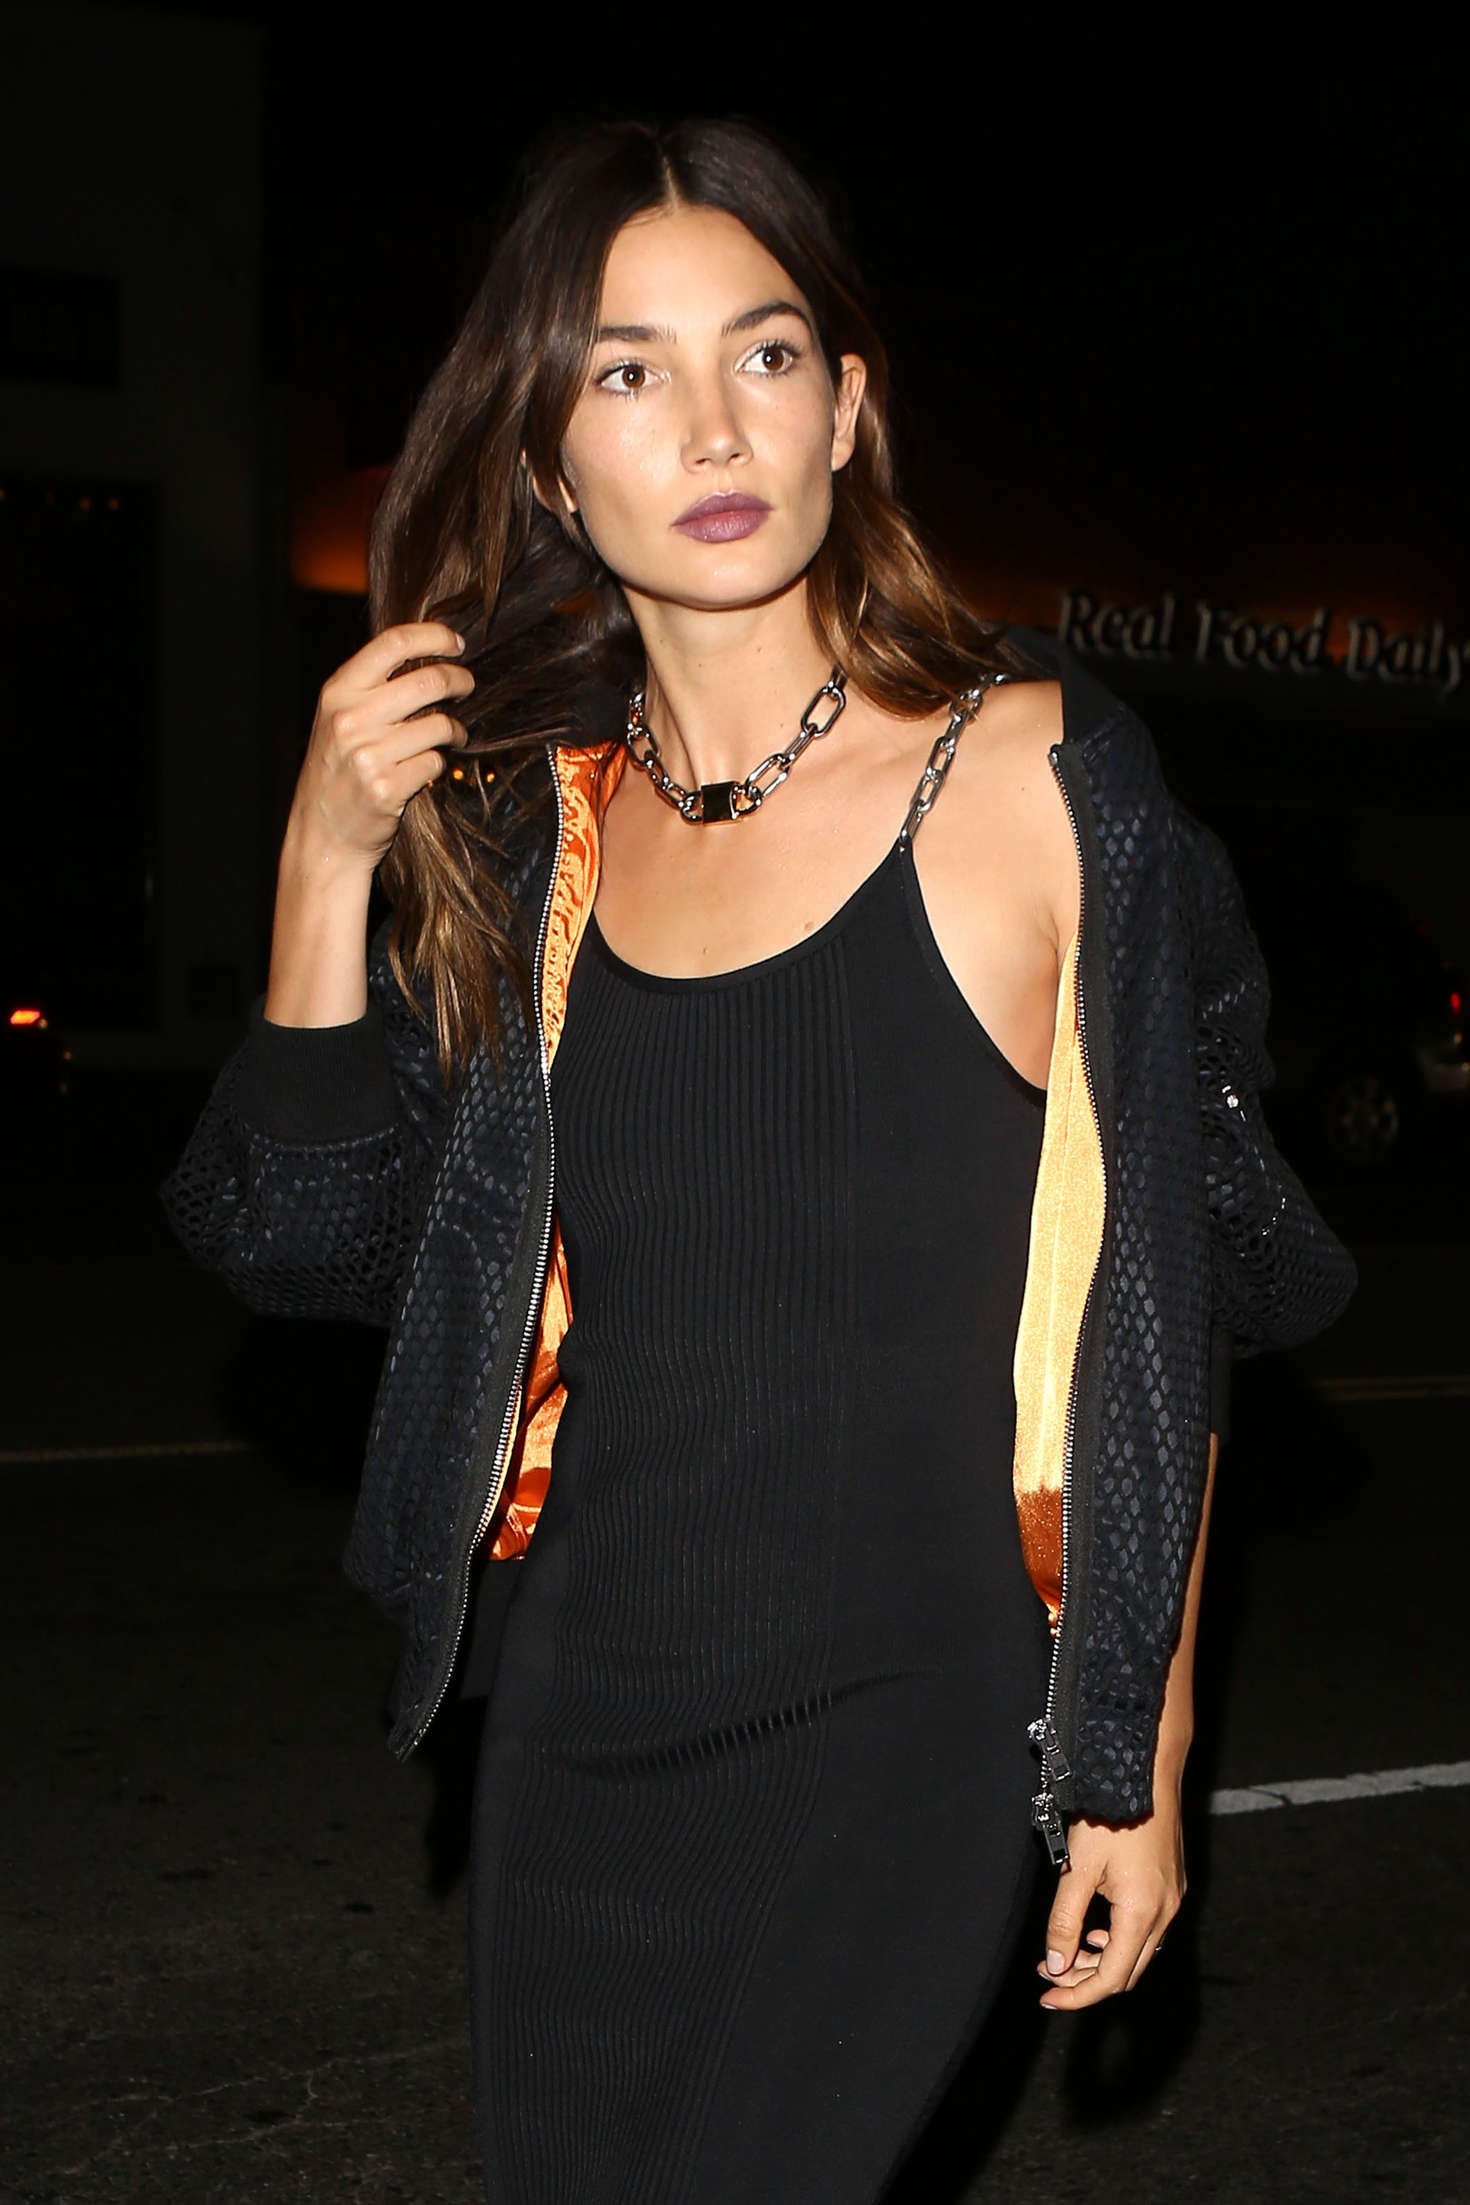 Lily Aldridge at Gigi's 21st Birthday Party in West Hollywood